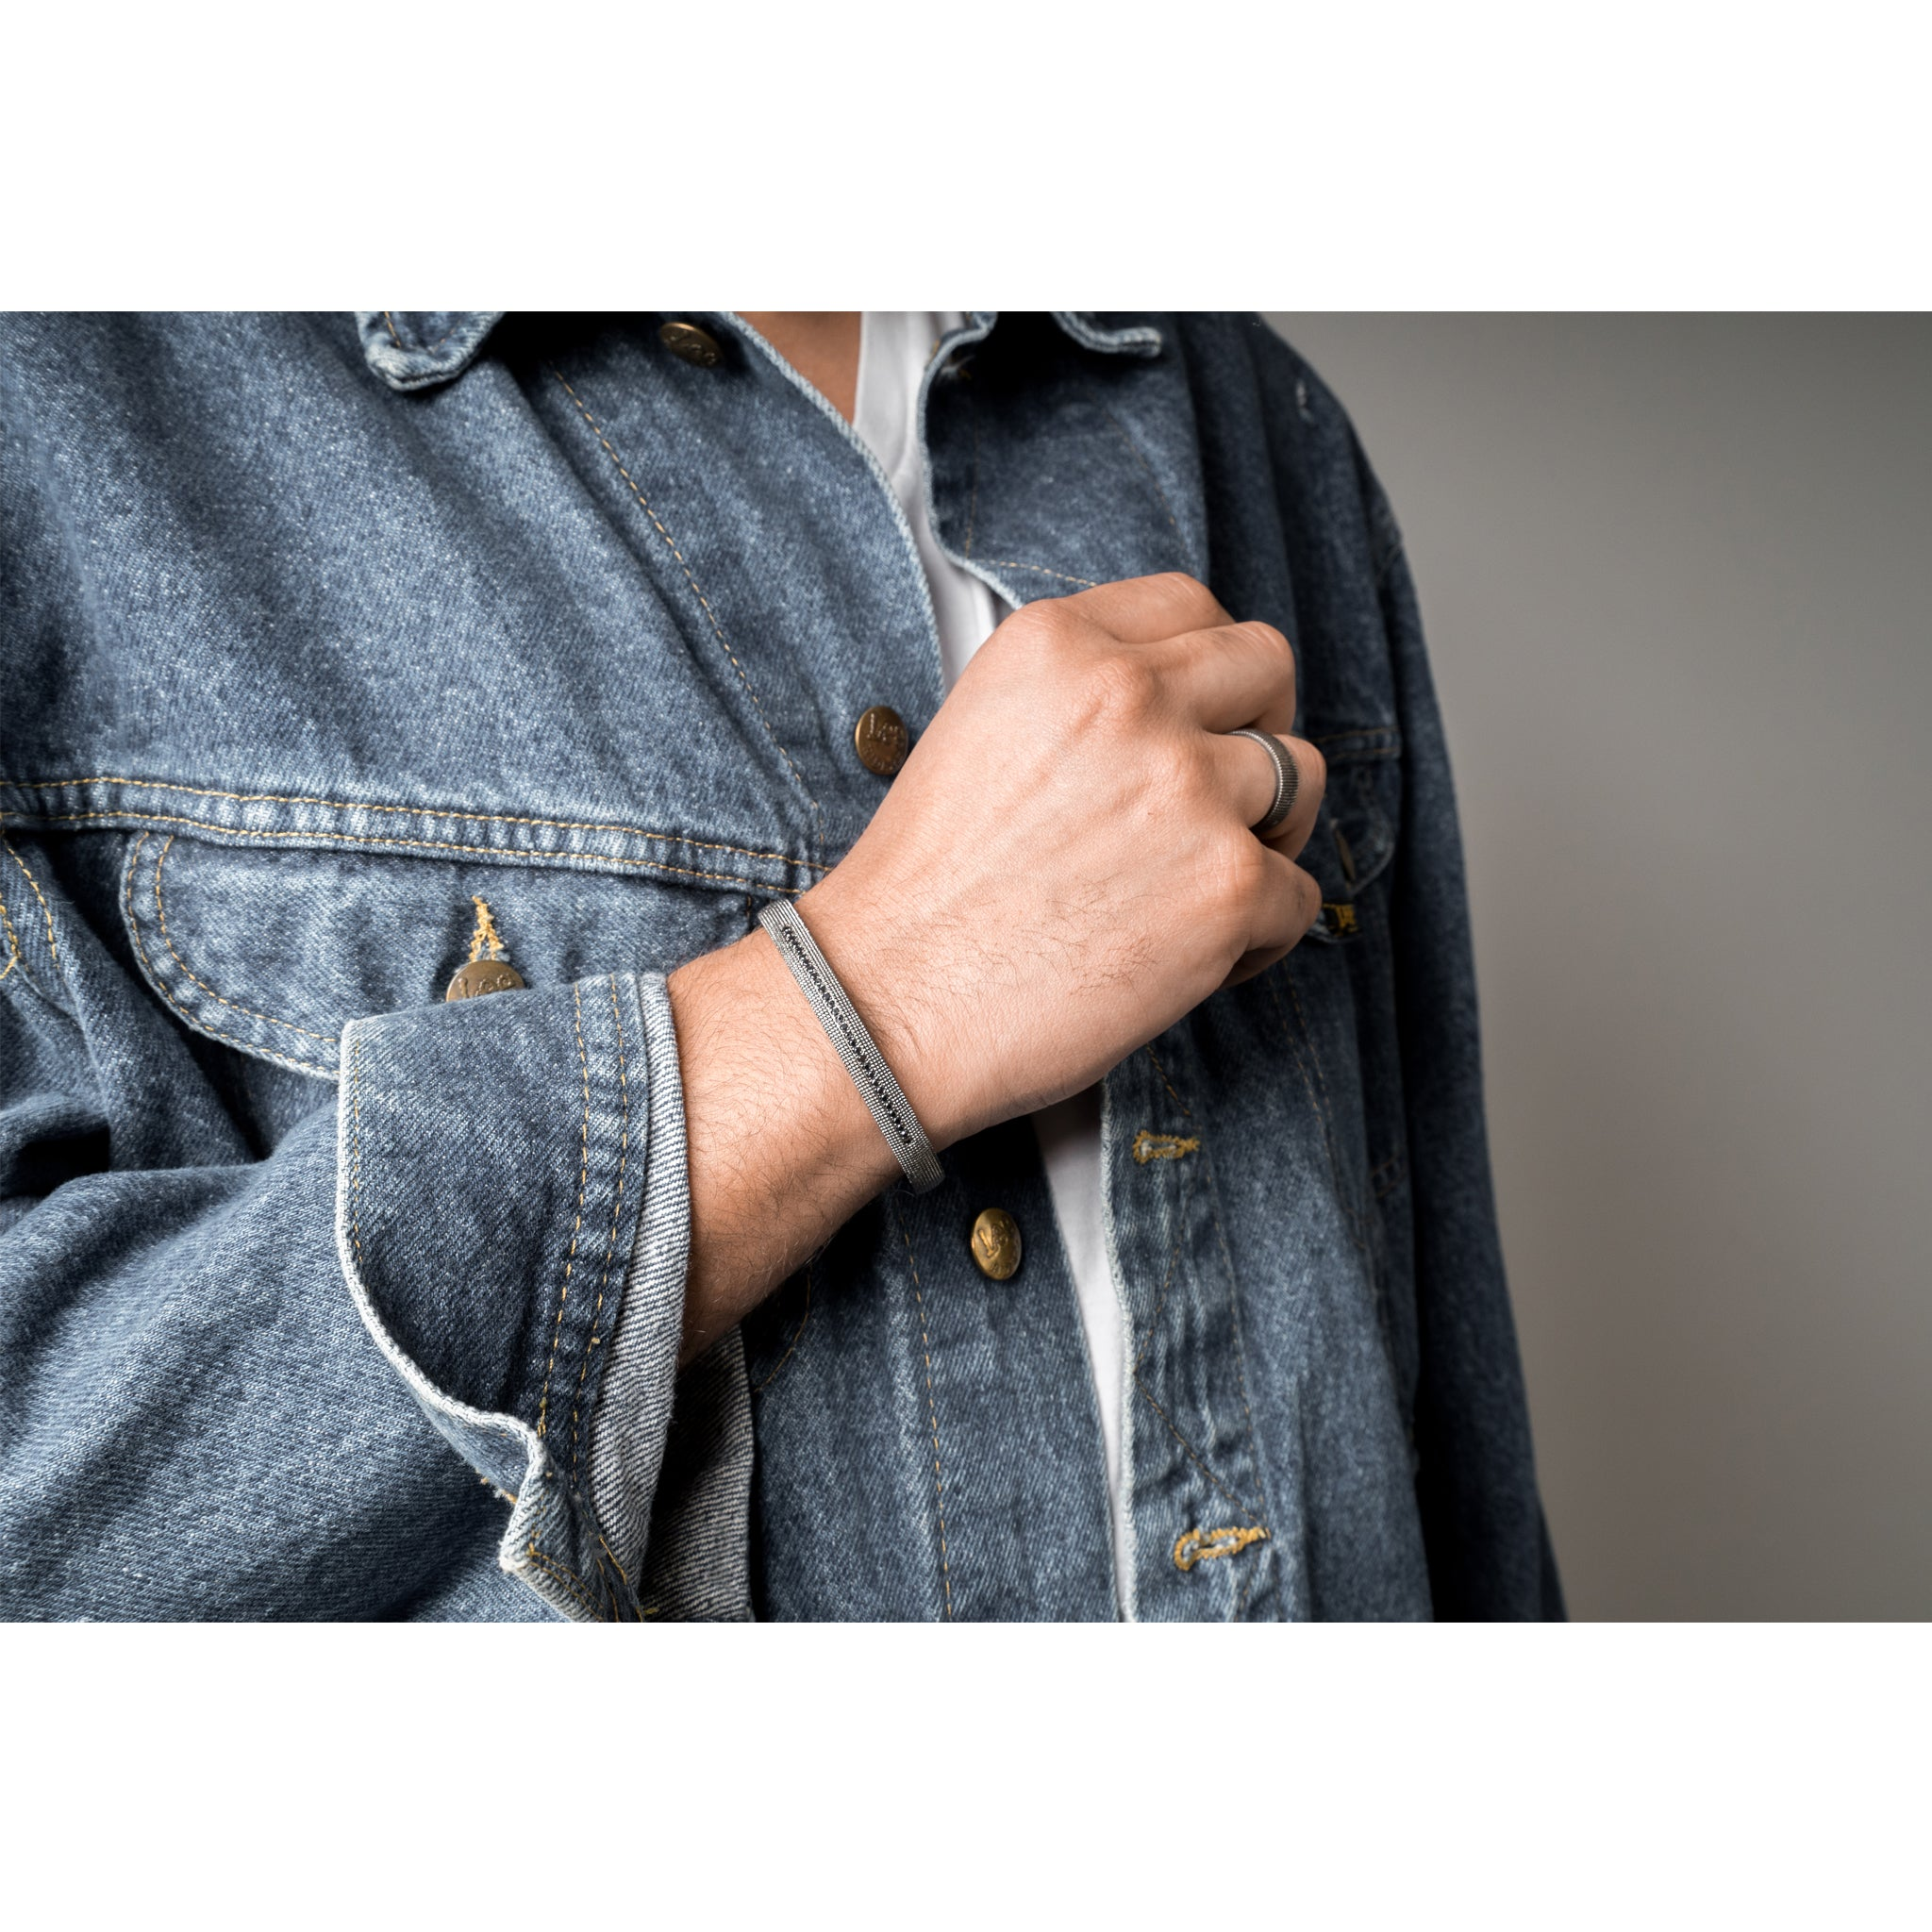 Closeup of a man in a denim jacket holding up his wrist to show a men's bracelet- a textured sterling silver cuff with black diamonds being worn